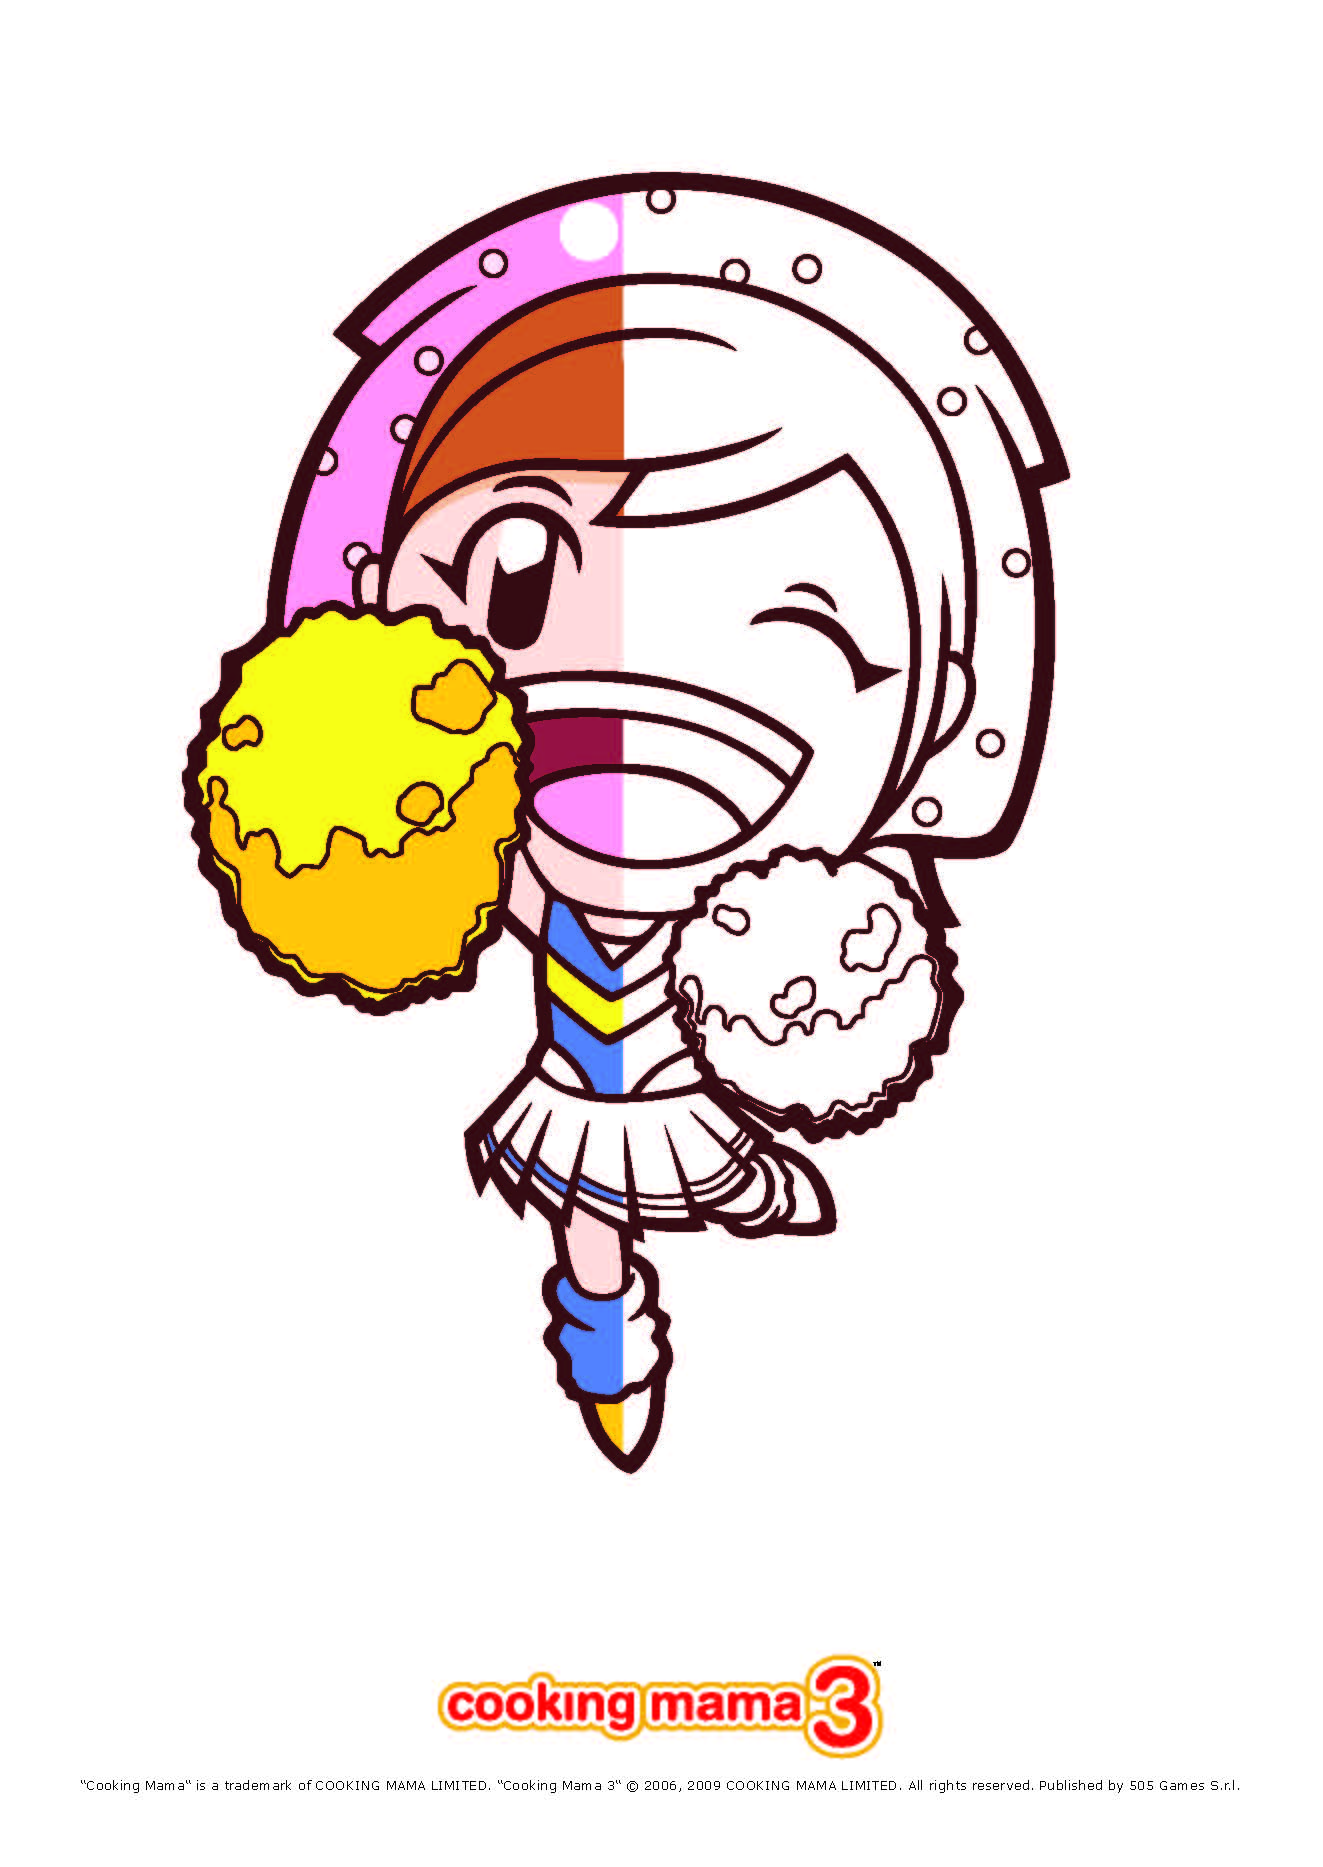 Dibujos para colorear cooking mama semi color - es.hellokids.com